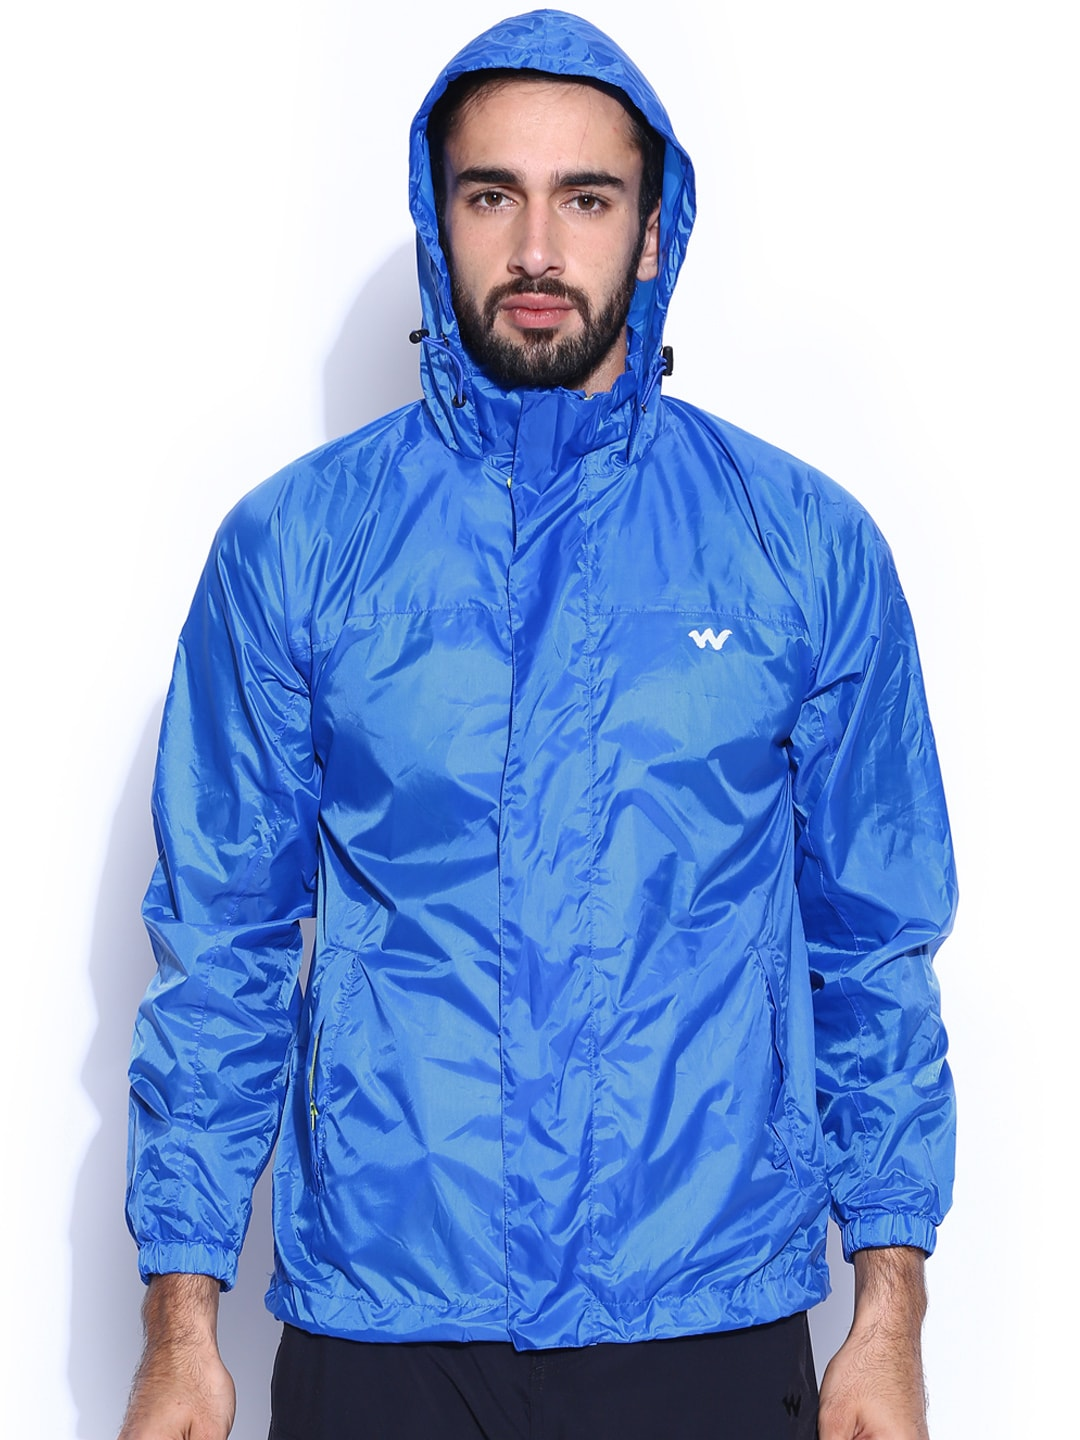 Wildcraft Blue Hooded Rain Jacket